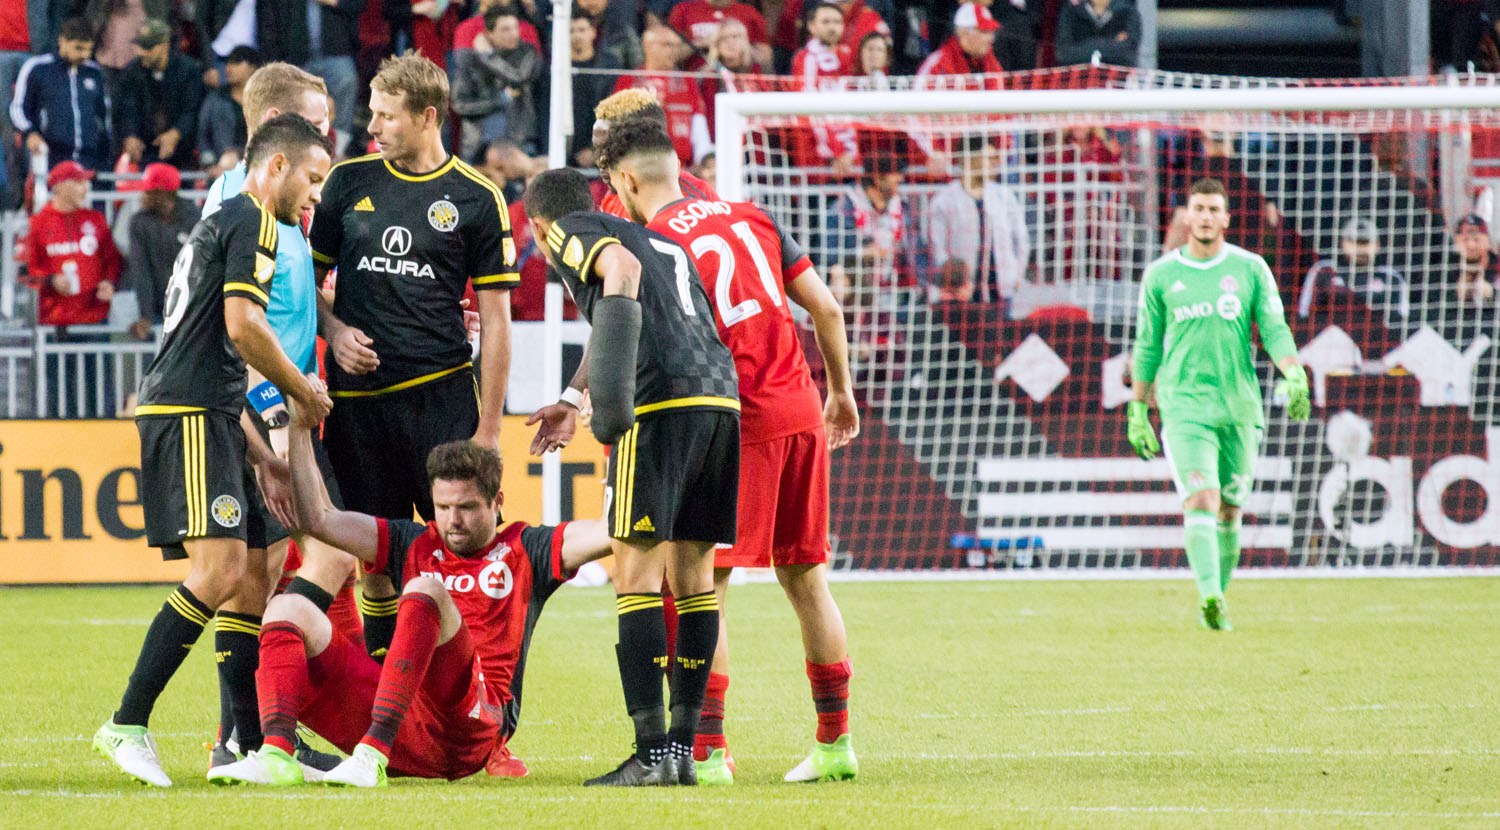 FIFA Fair Play in full effect at Columbus Crew players help up from the field.